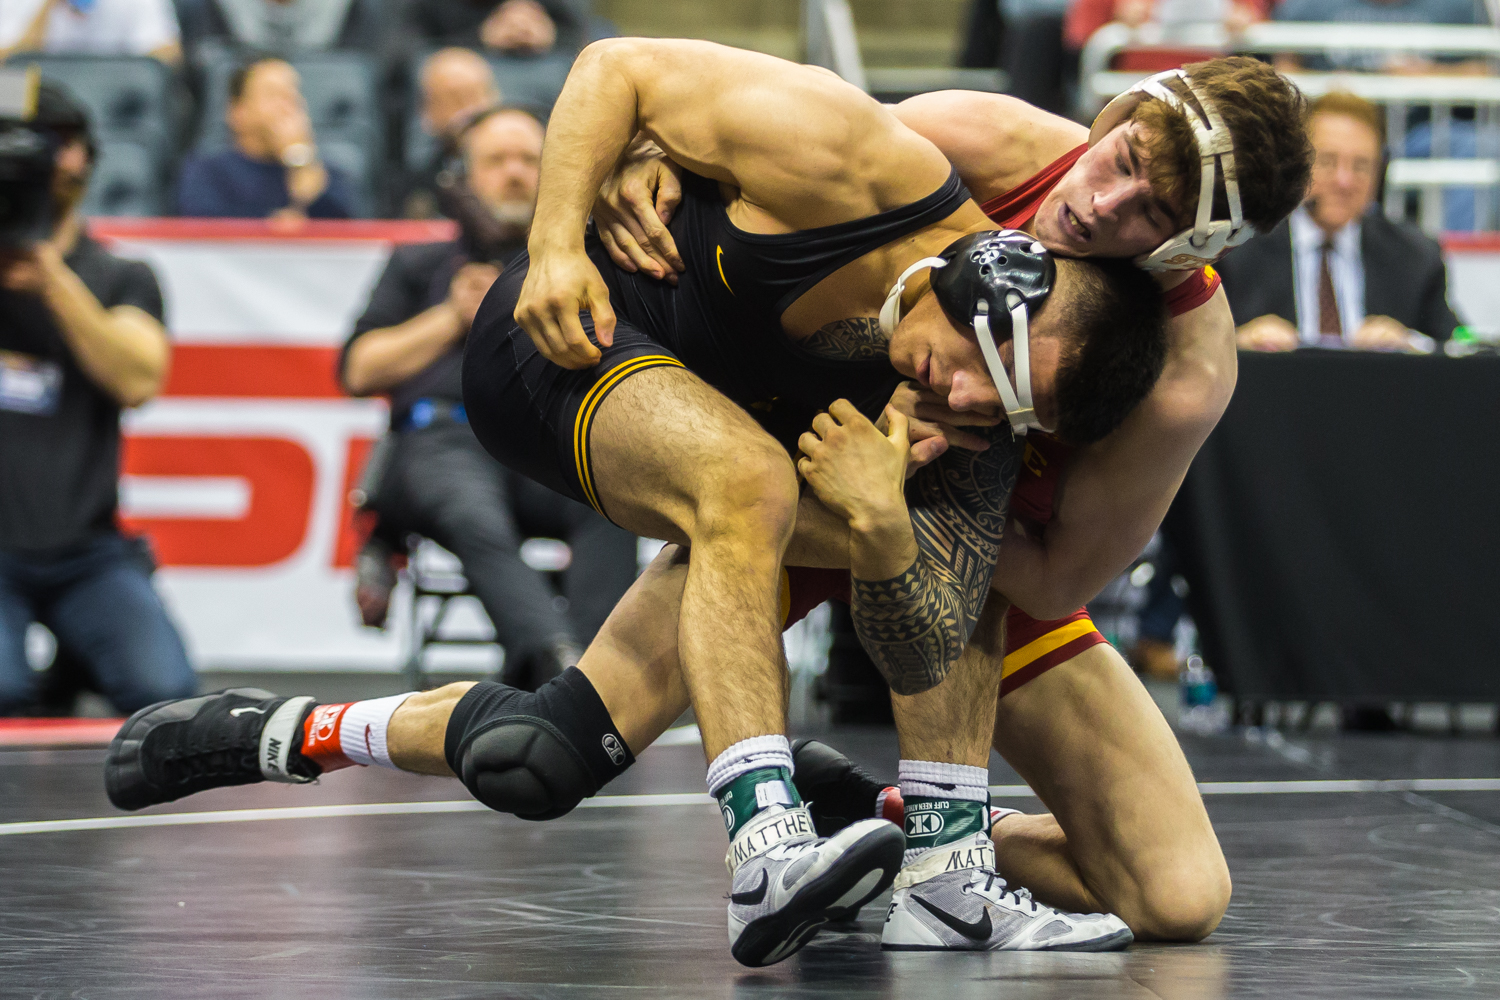 Iowa%E2%80%99s+149-pound+Pat+Lugo+wrestles+Iowa+State%E2%80%99s+Jarrett+Degen+during+the+fifth+session+of+the+2019+NCAA+D1+Wrestling+Championships+at+the+PPG+Paints+Arena+in+Pittsburgh%2C+PA+on+Saturday%2C+March+23%2C+2019.+Degen+won+by+decision%2C+11-9%2C+and+earned+seventh+in+the+weight+class.